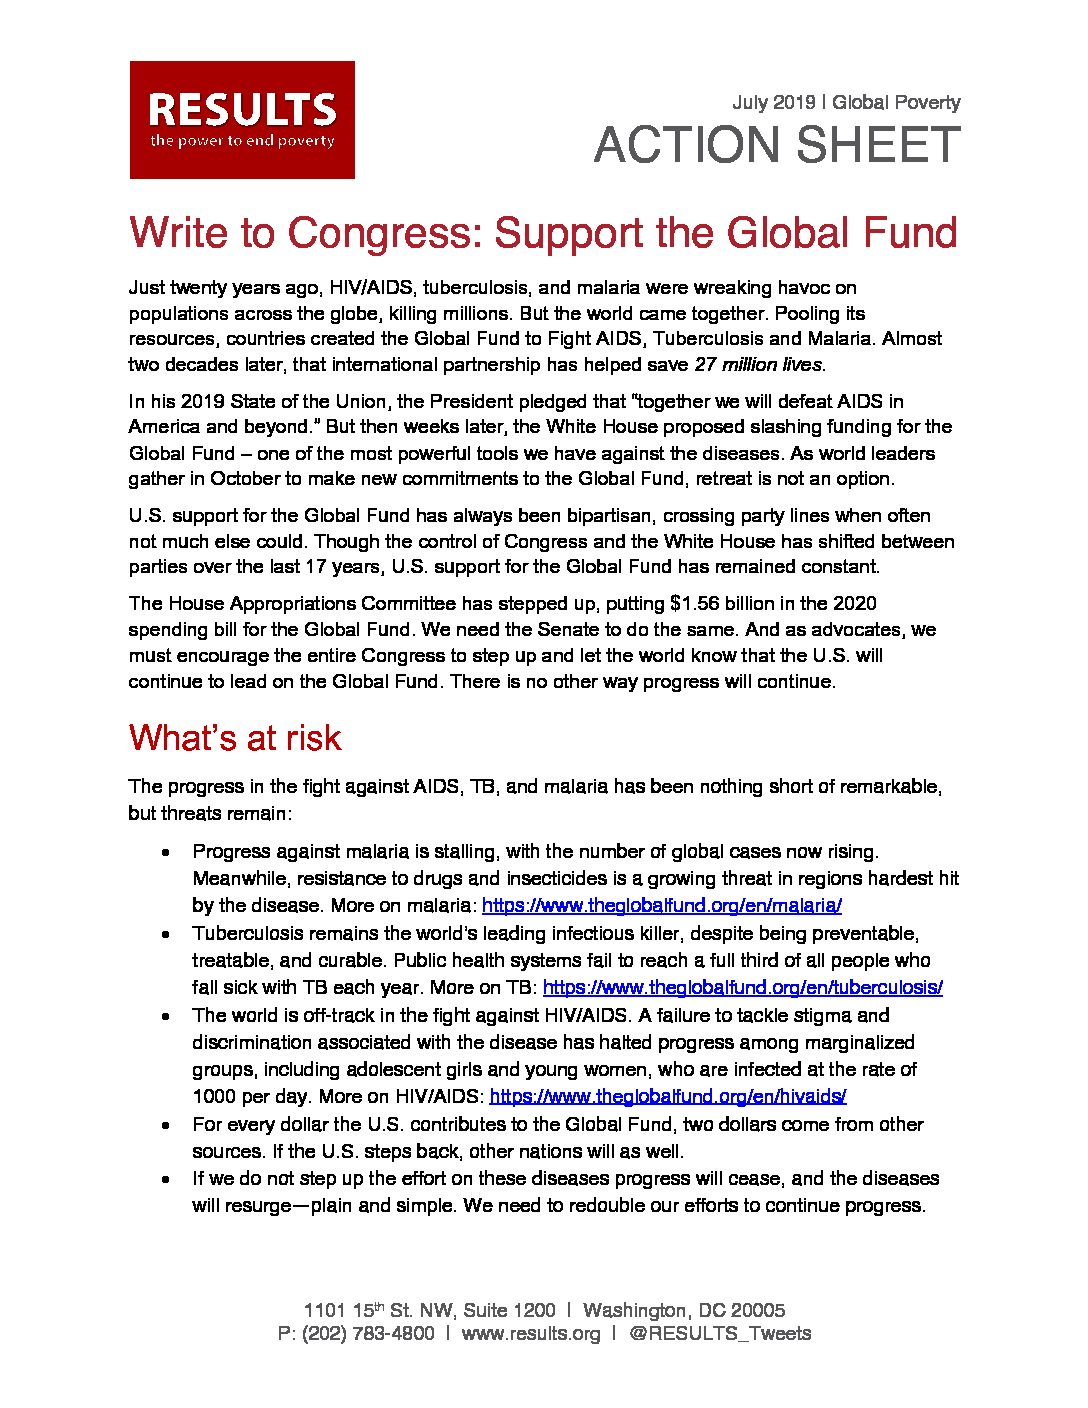 July 2019 Global Action Letter To Congress Global Fund Resolutions